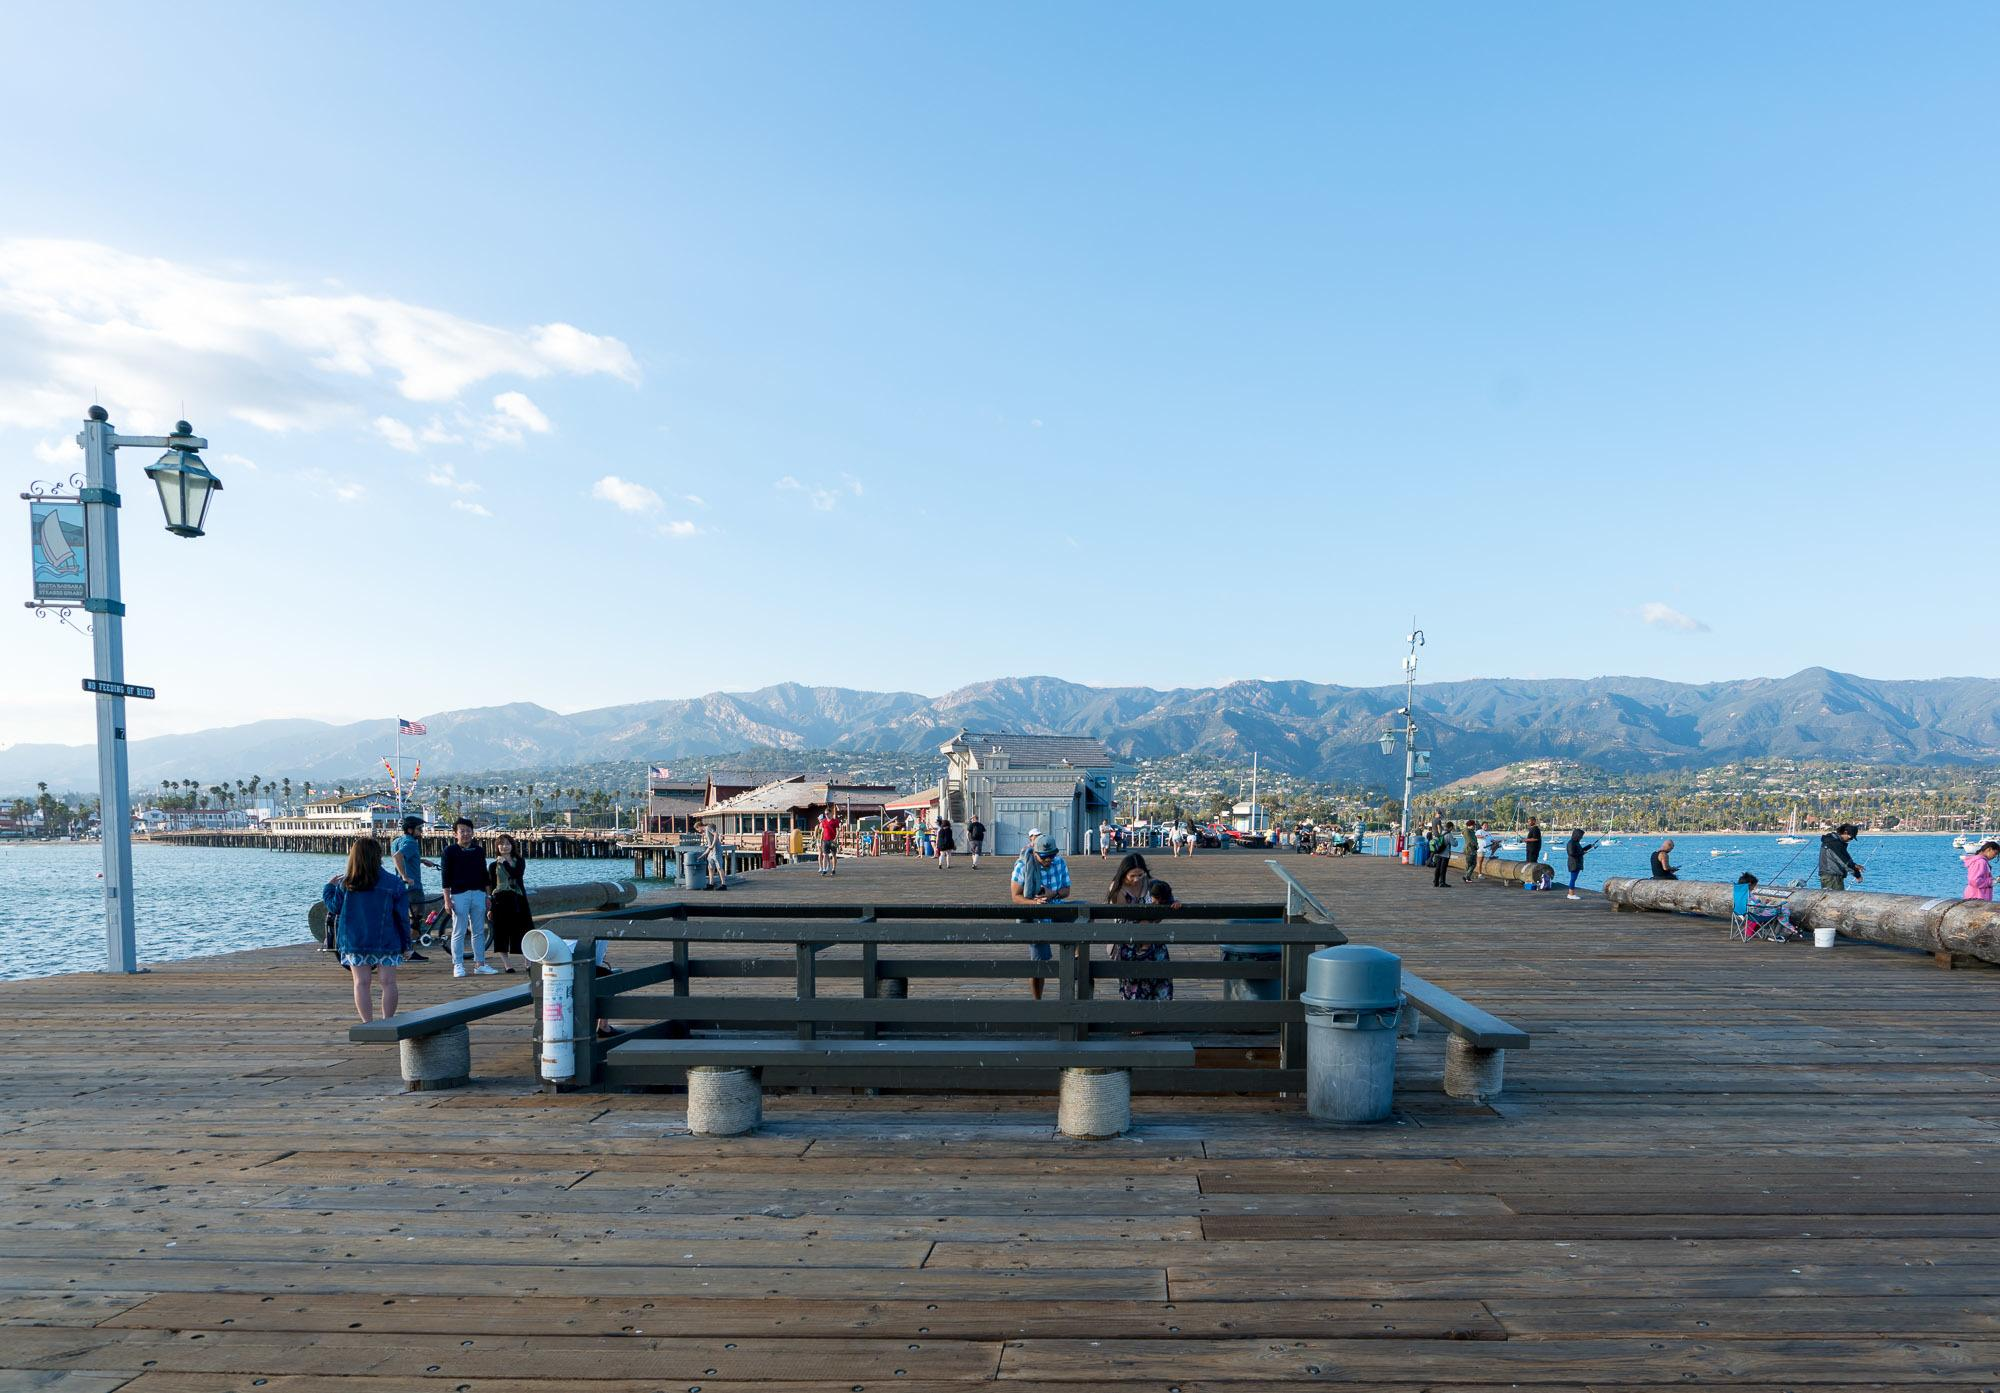 Stearns Wharf is Santa Barbara's top attraction.